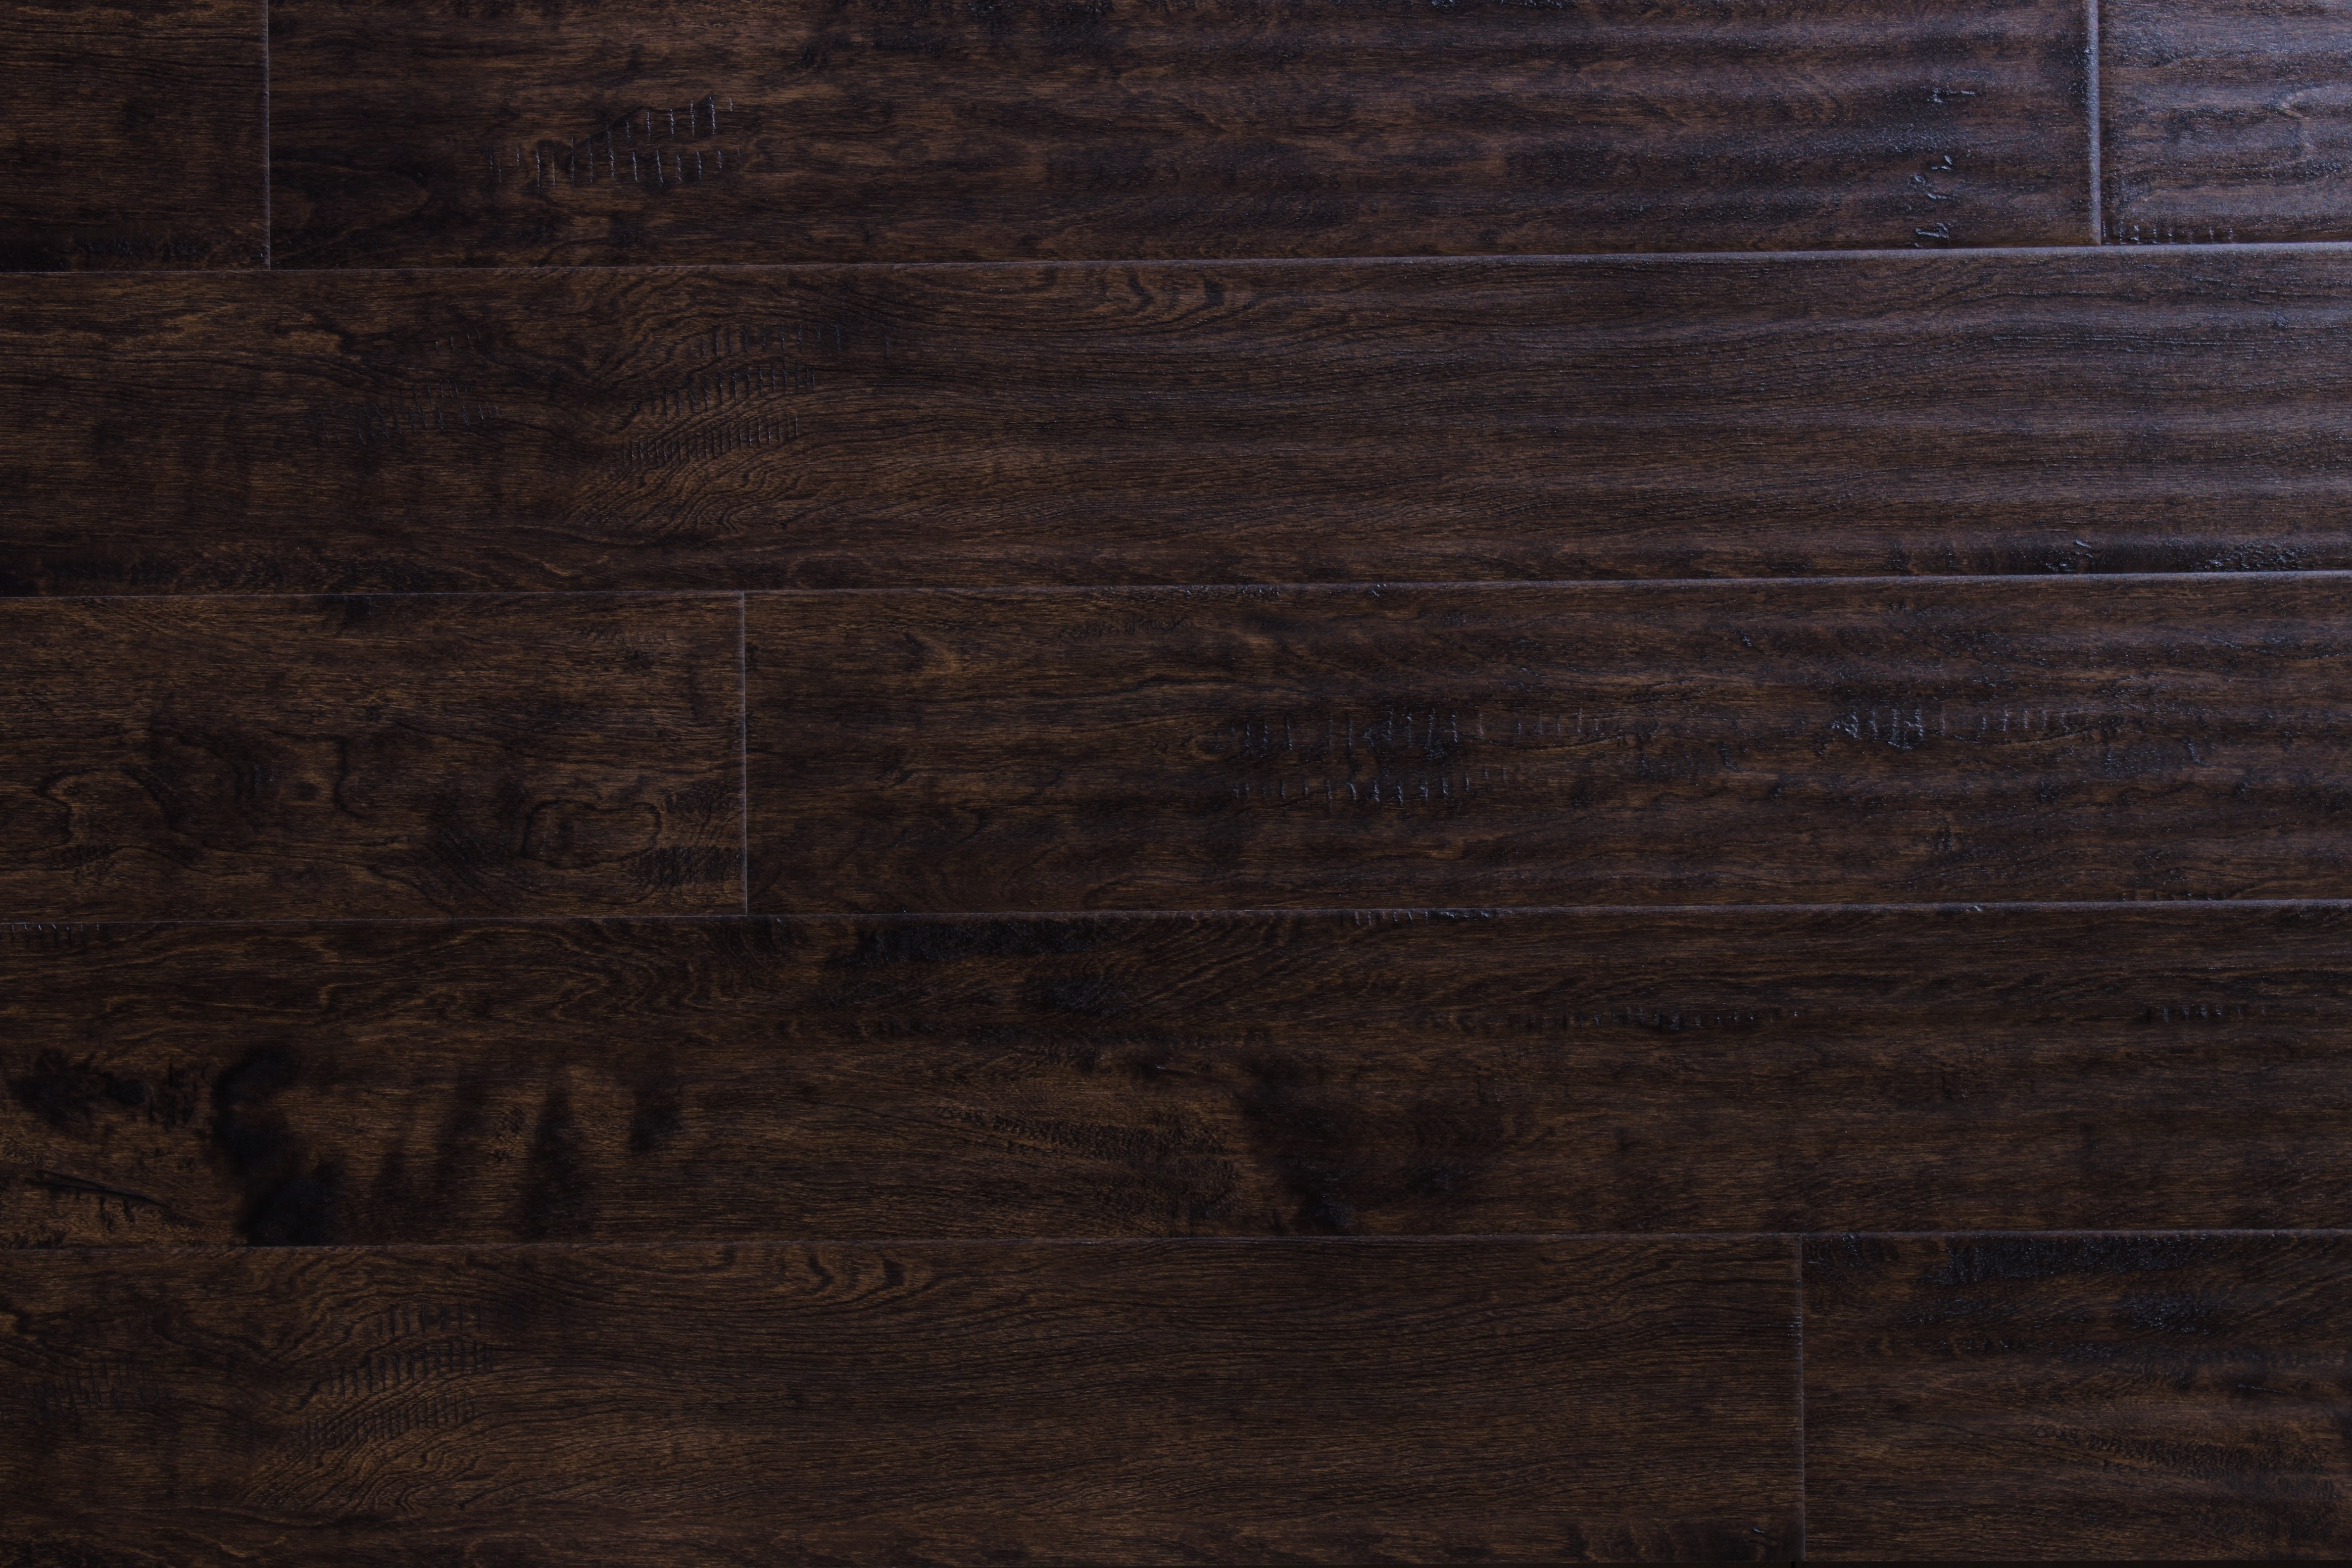 3 4 red oak hardwood flooring of wood flooring free samples available at builddirecta within tailor multi gb 5874277bb8d3c